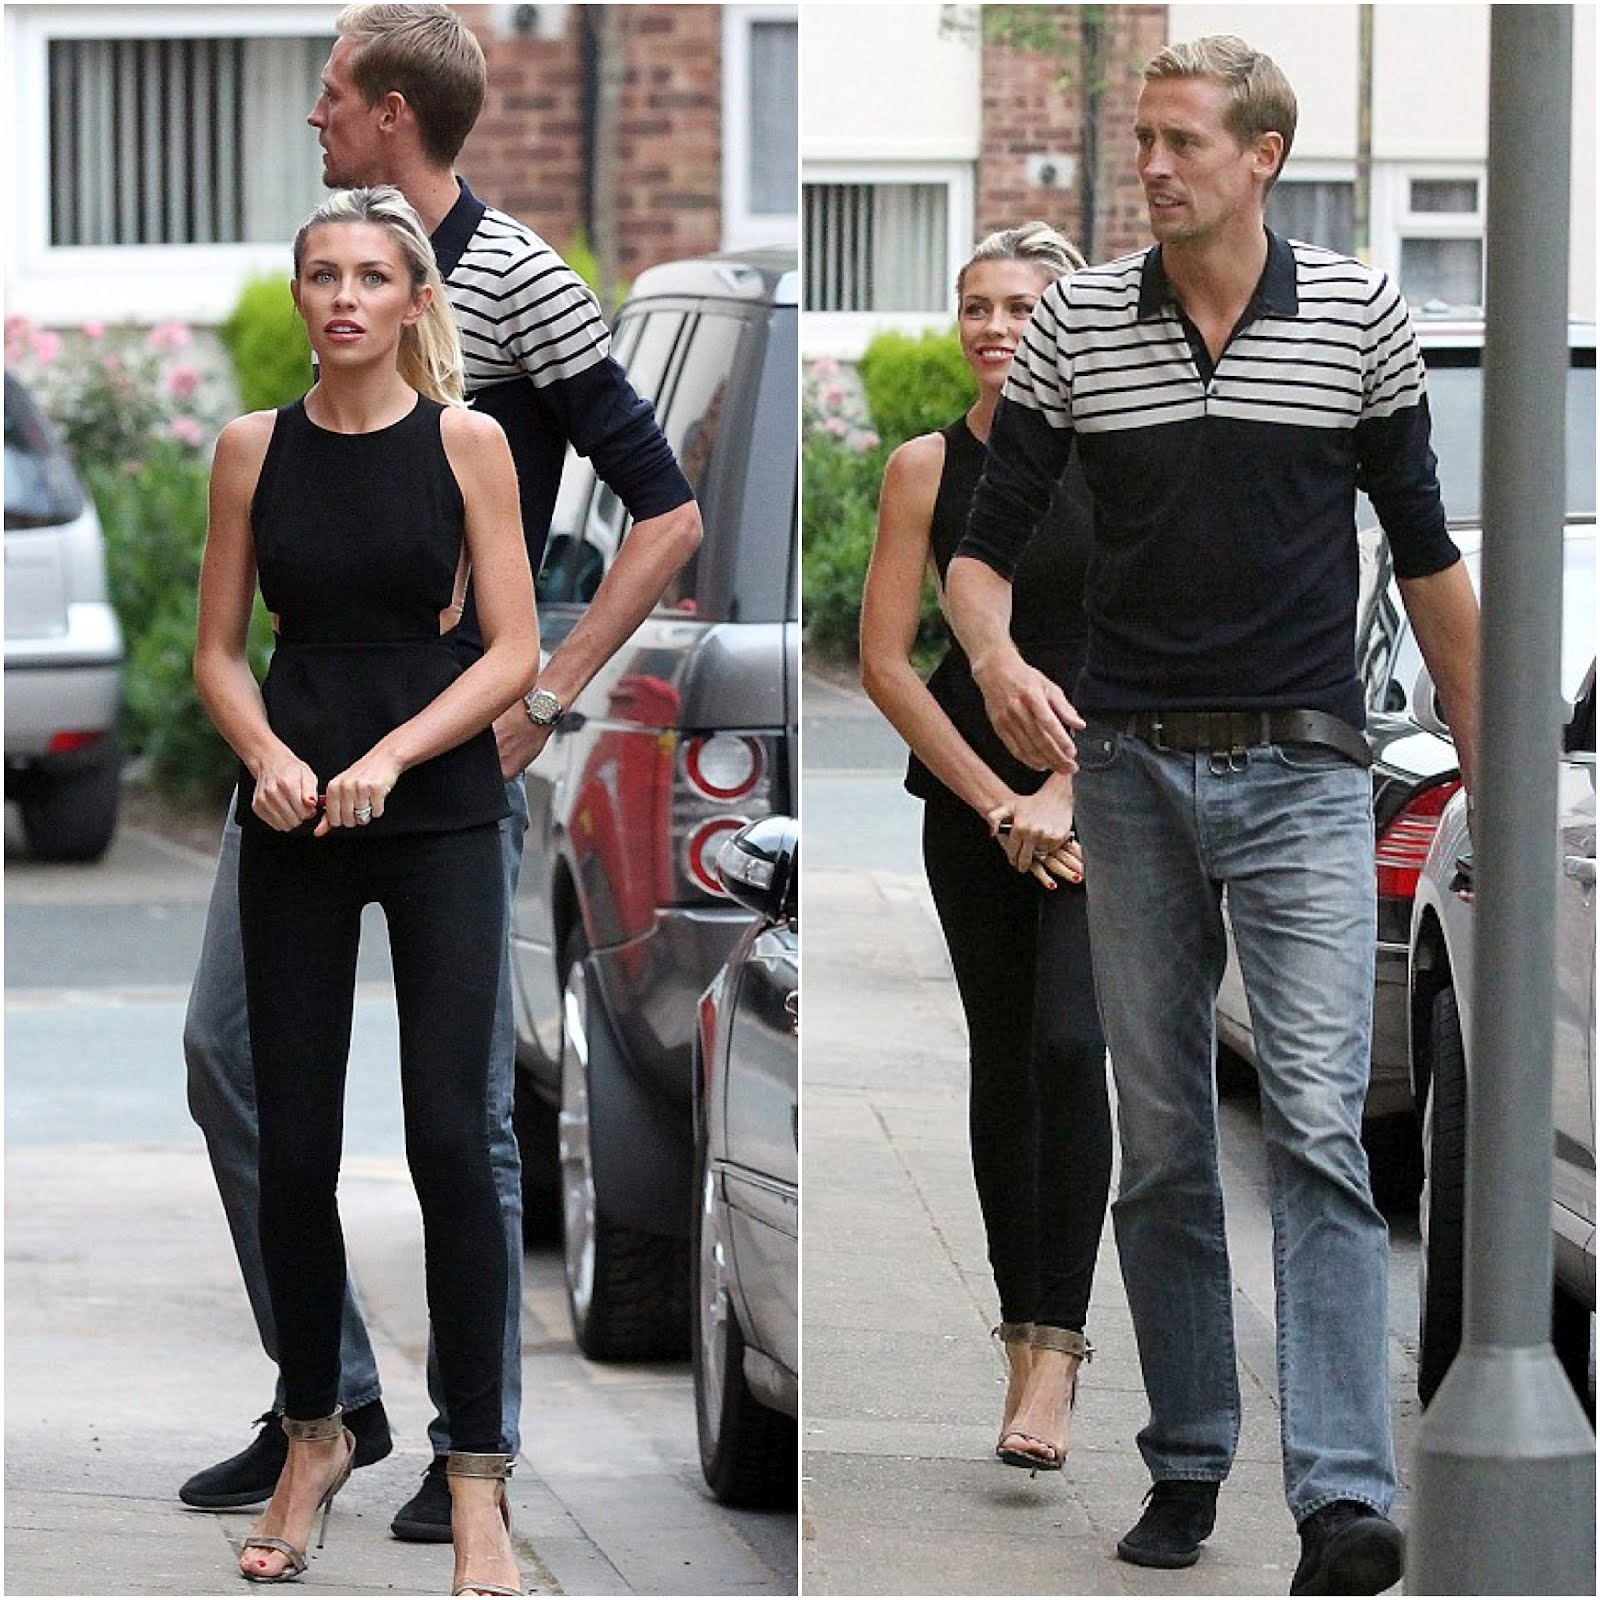 00O00 London Menswear Blog celebrity style Peter Crouch and Abbey Clancy The Grill On The Edge in Alderley Edge, Peter Crouch in John Smedley Fischer merino wool polo t-shirt available from Mr Porter